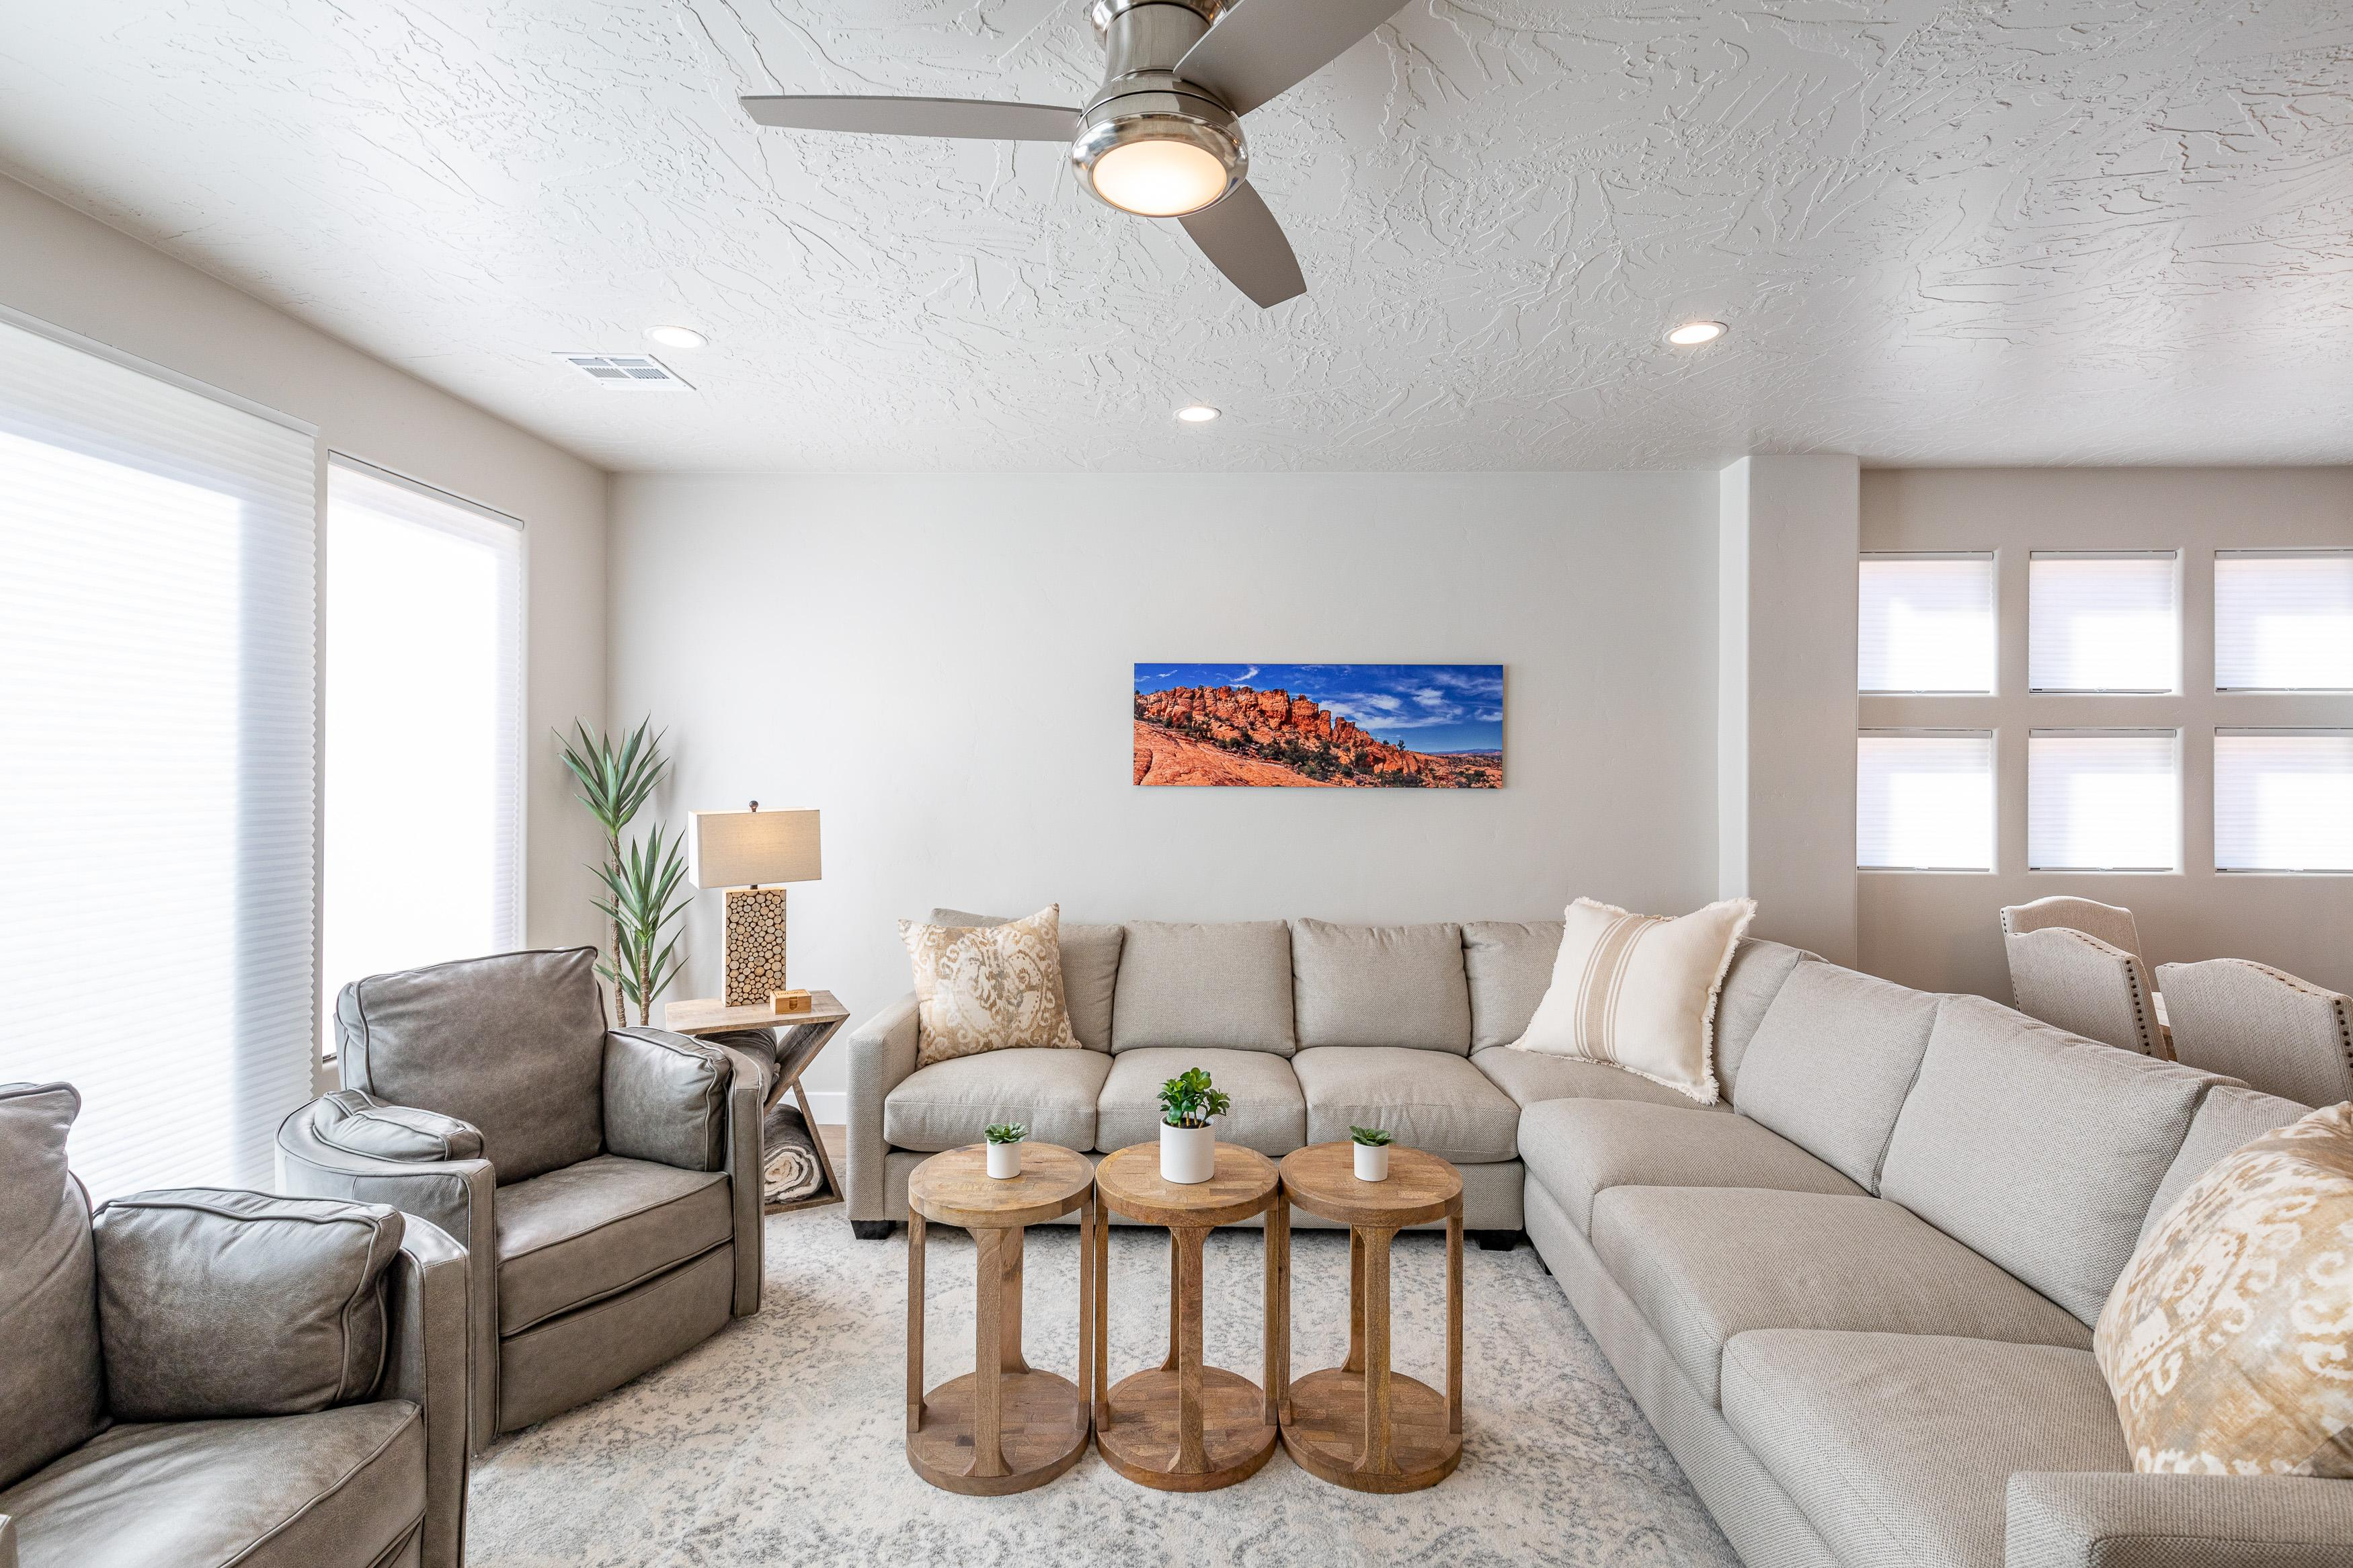 The living room is designed as an open floor plan and is a great gathering place for meals, games, or watching TV during your stay.